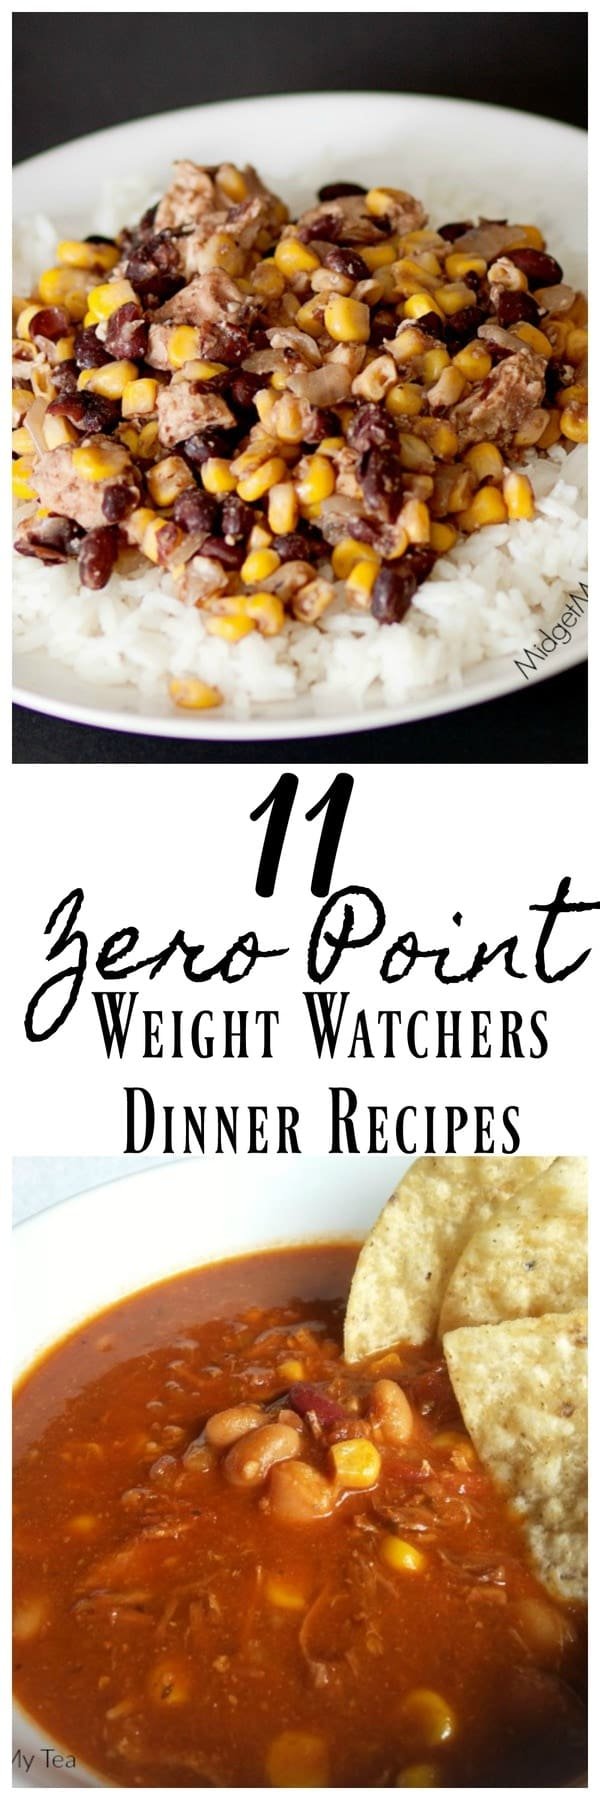 11 Zero Point Weight Watchers Dinner Recipes • MidgetMomma